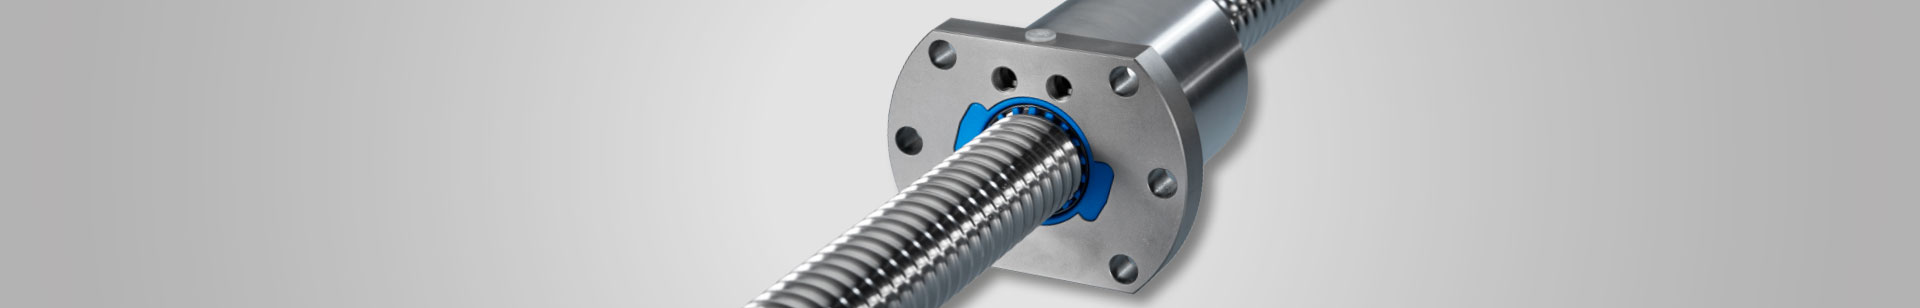 Steinmeyer Cooled Ball Screws